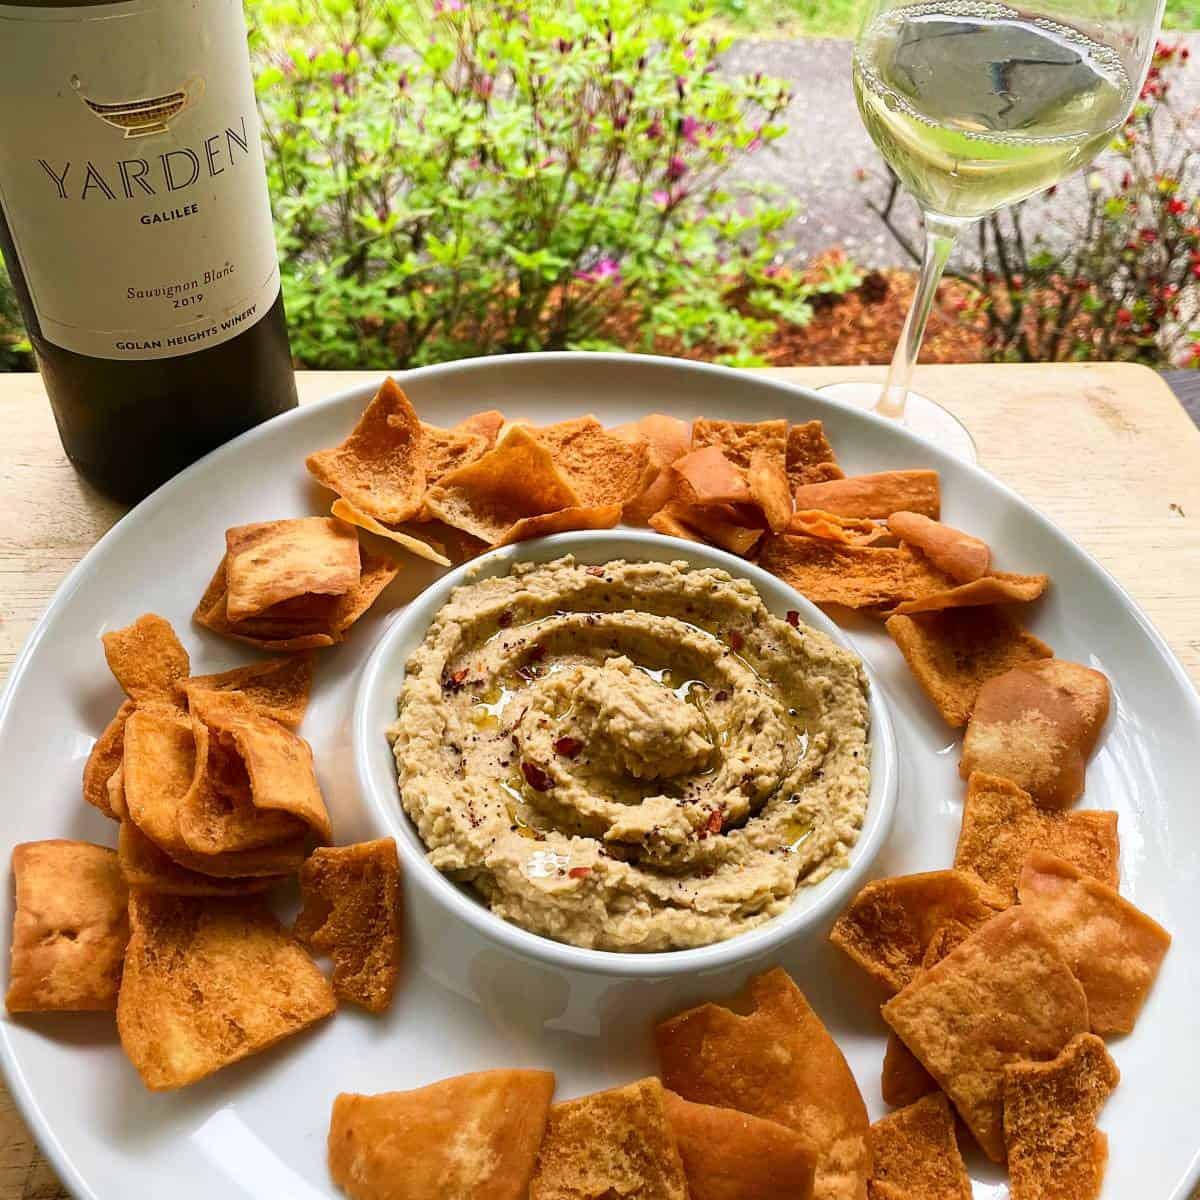 hummus in a white serving dish along with pita chips and Yarden Sauvignon Blanc wine.